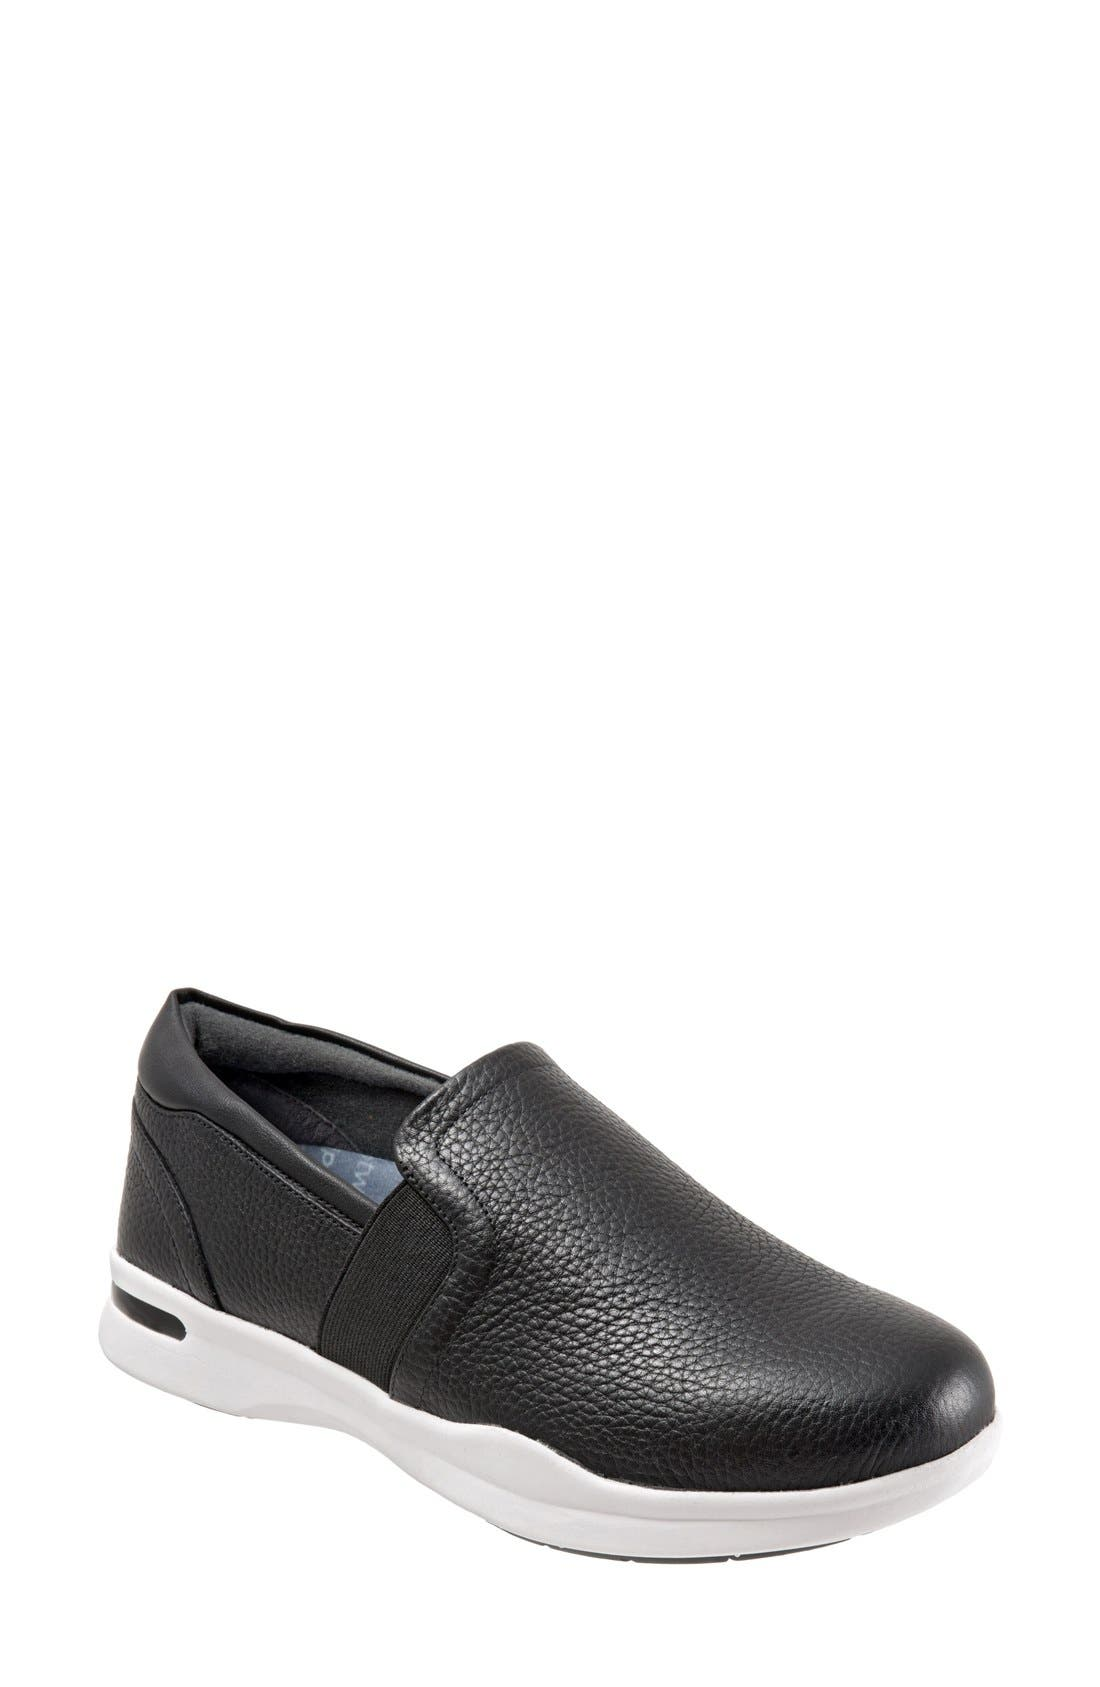 Softwalk® 'Vantage' Slip-On Sneaker ...